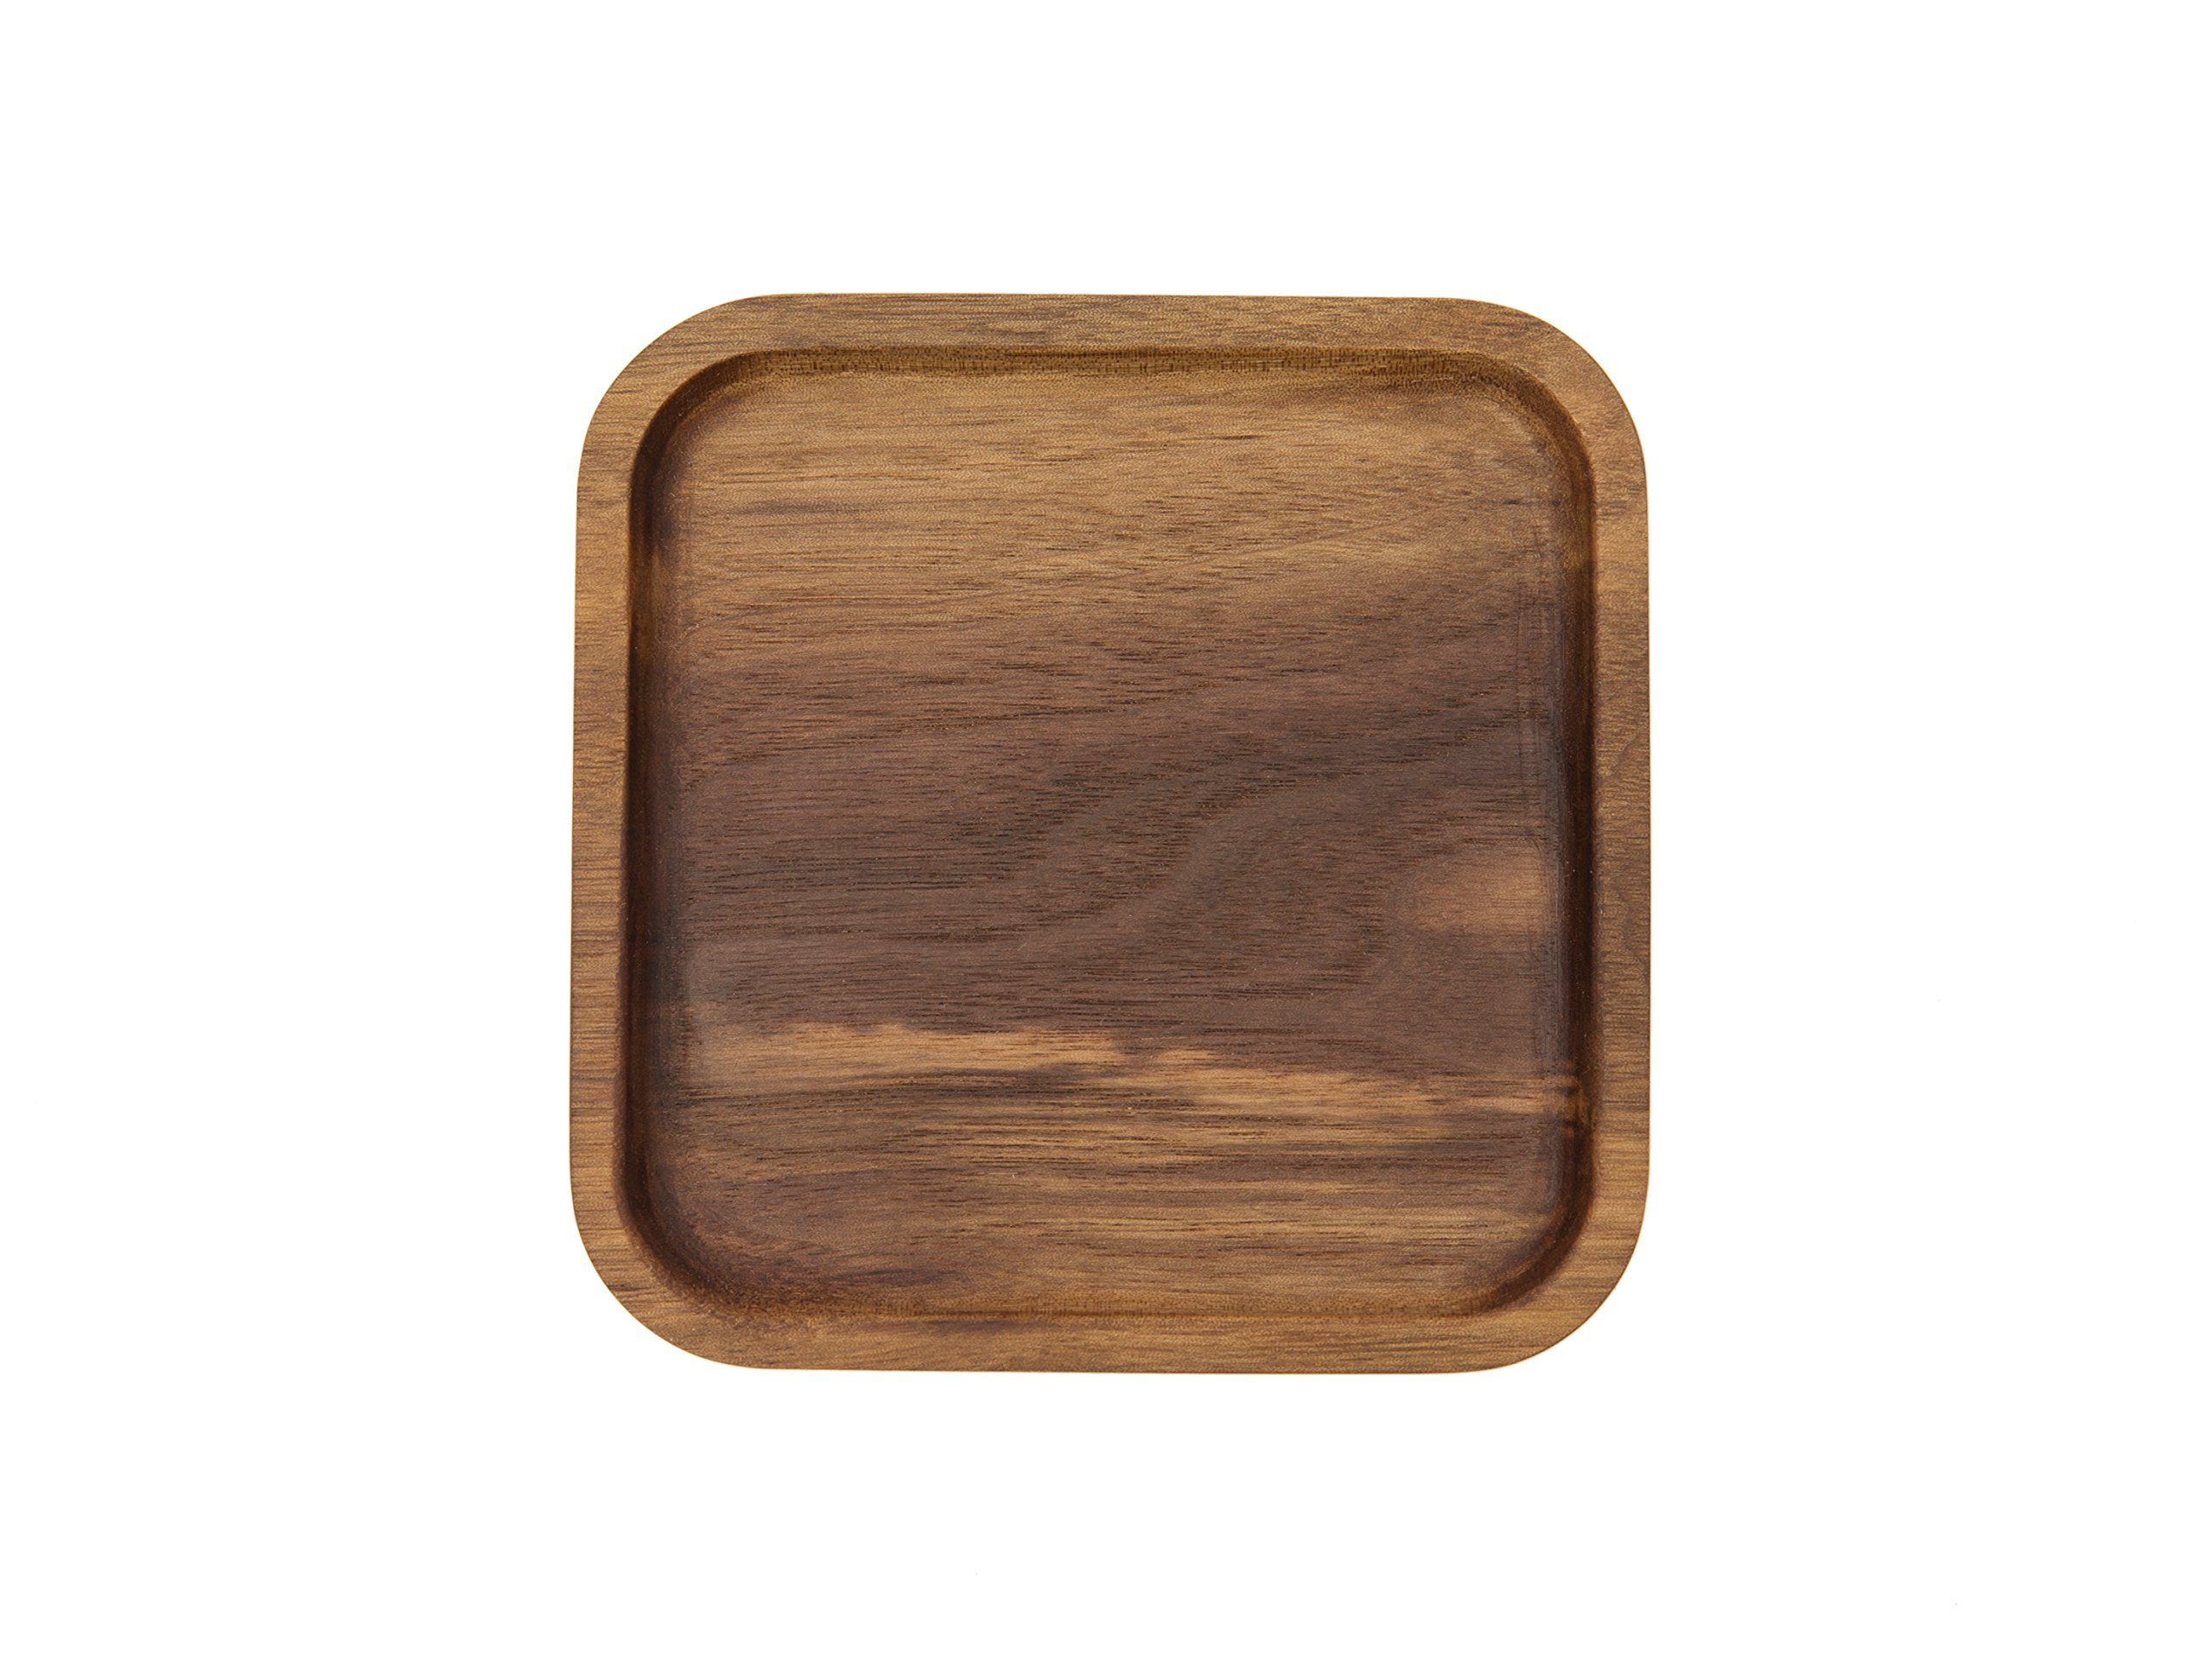 WOOD MEETS COLOR Wood Handmade Serving Tray, Food & Fruit Plate, Creative Tableware 5.1x5.1 Inches (Walnut Square Tray 1)